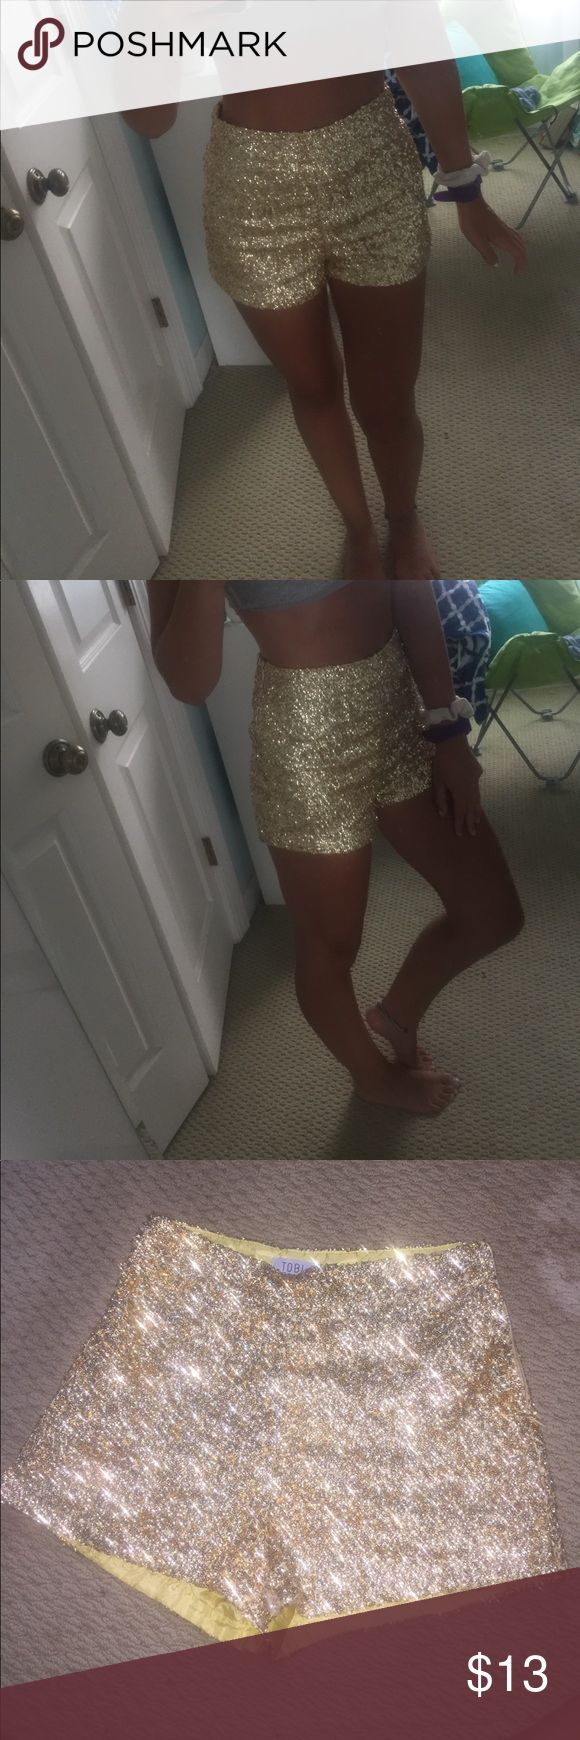 High waisted glitter shorts Very festive gold glitter high waisted shorts from Tobi! There are a couple of snags from the sequins but nothing noticeable. These shorts are my favorite to go out in but they don't fit me anymore! Tobi Shorts